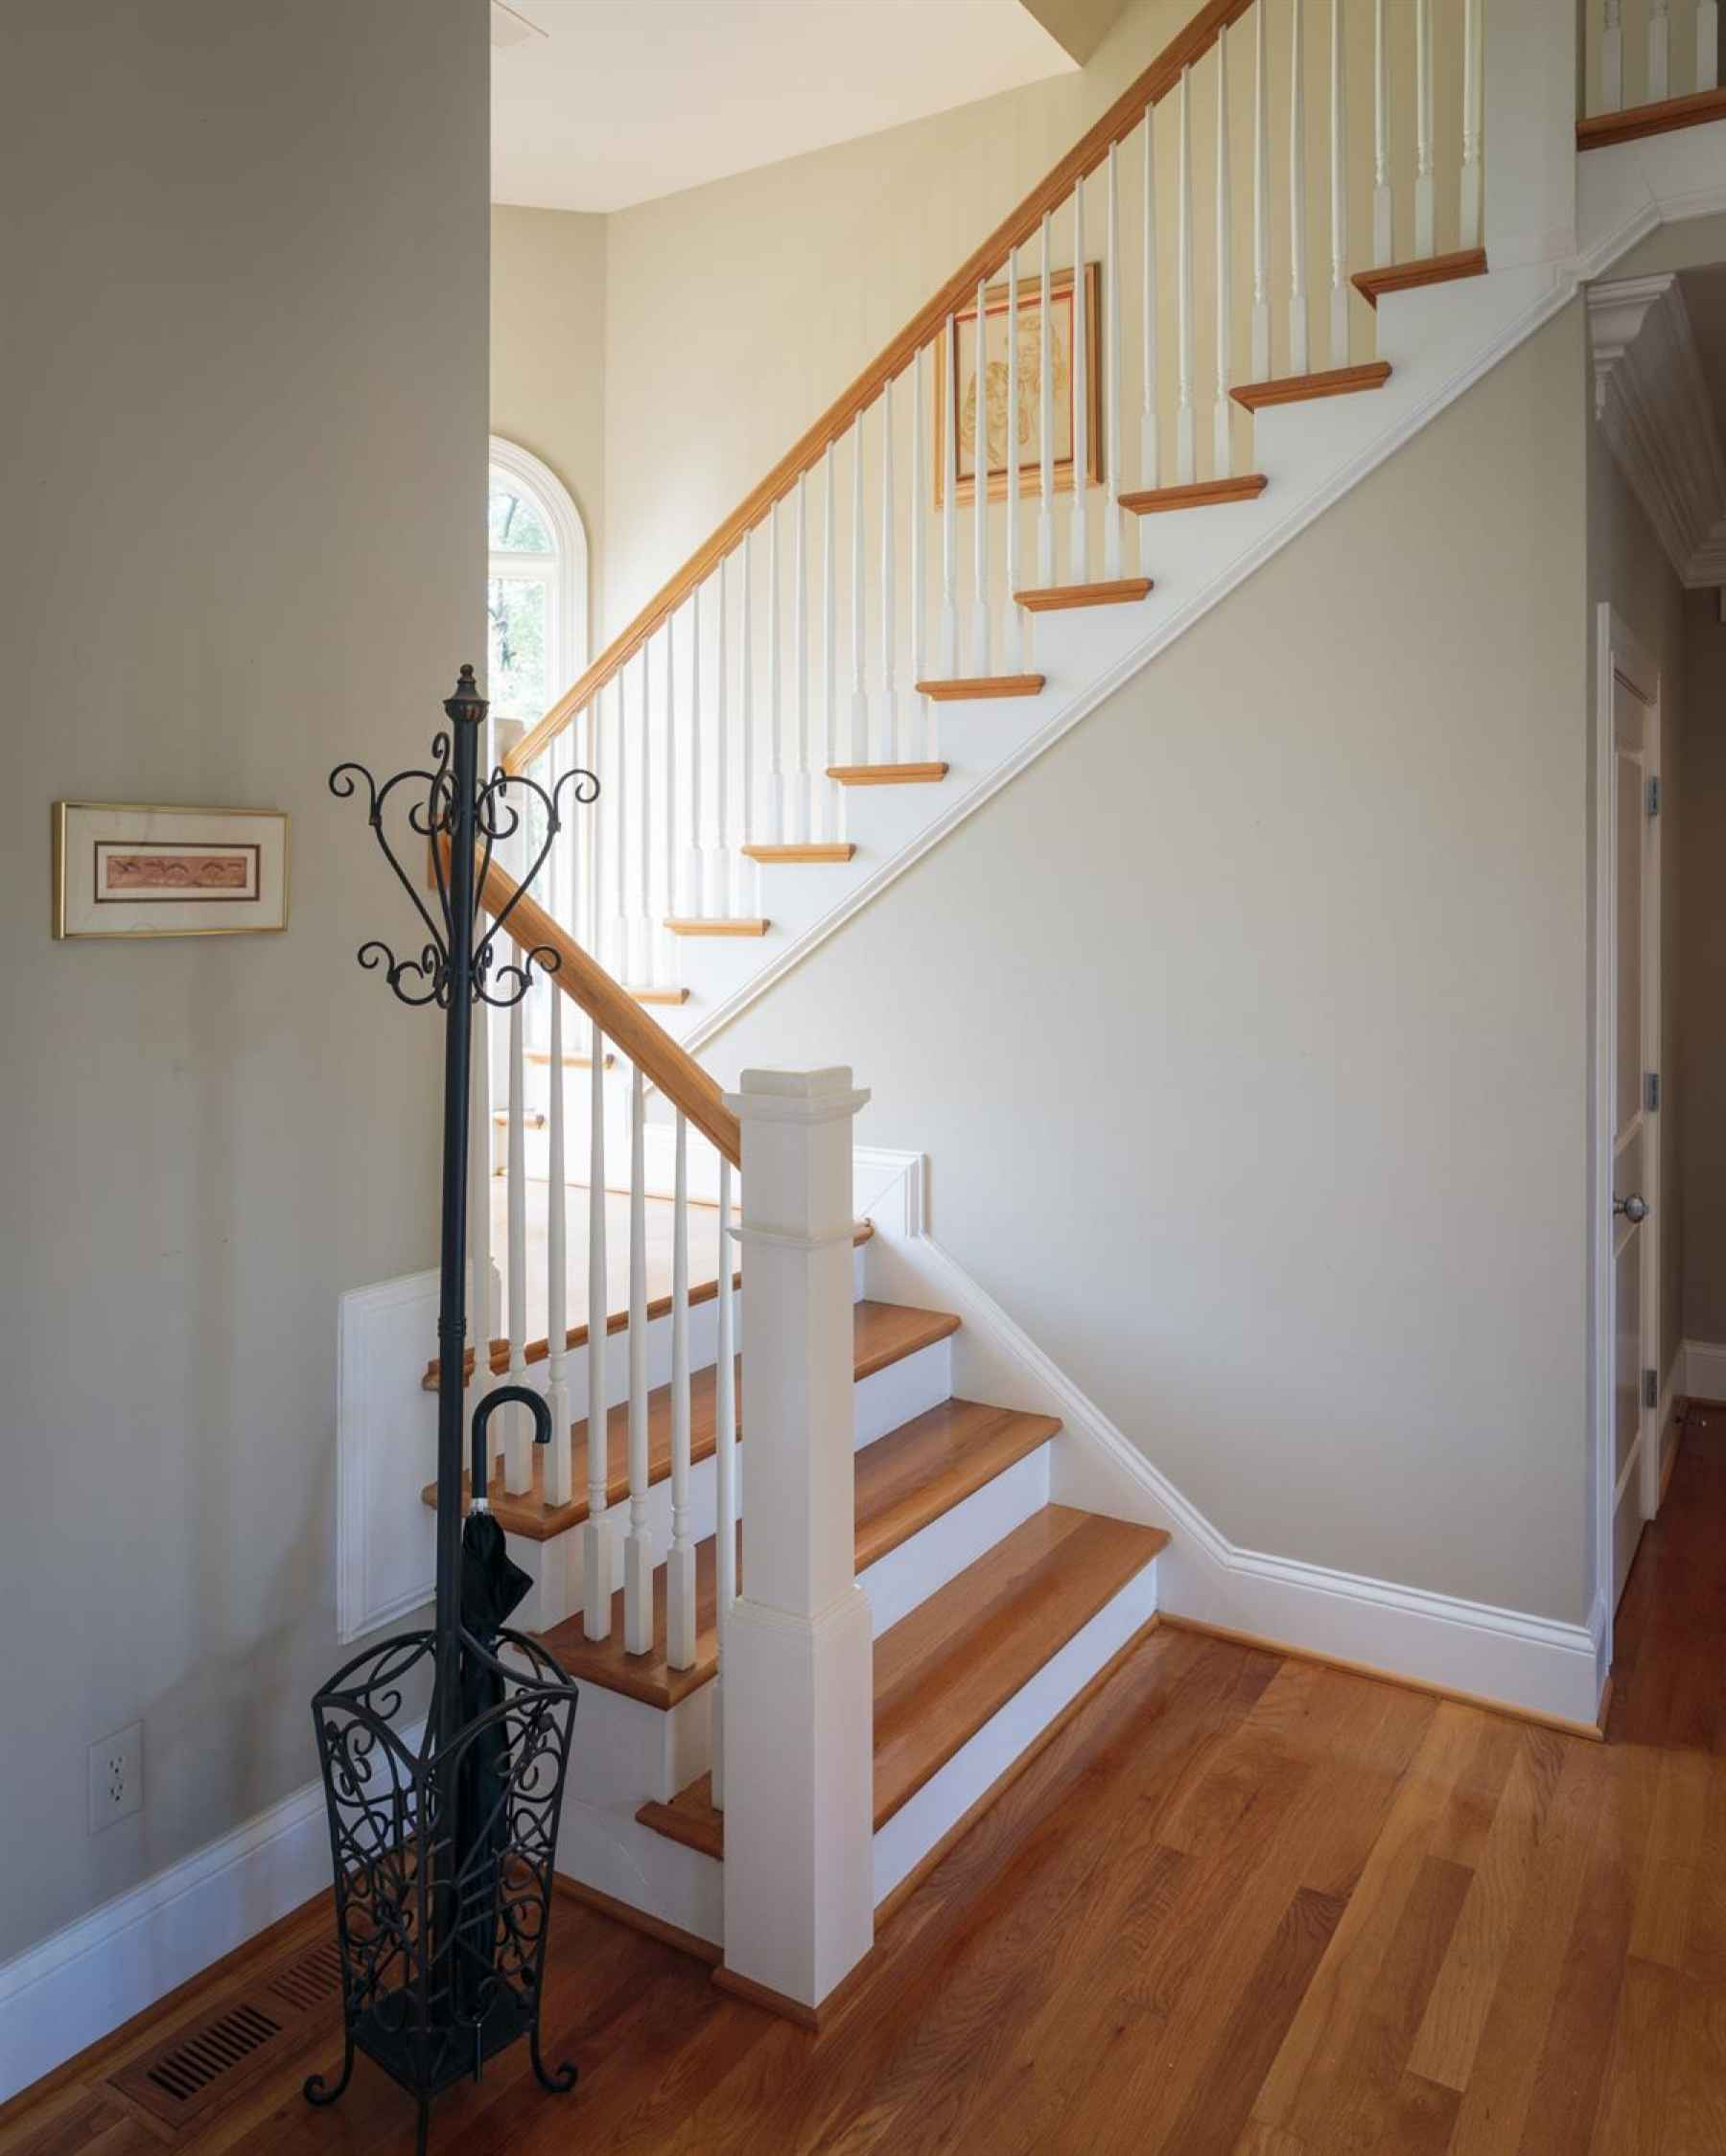 Stairwell to second floor flanked with large window allowing natural light to fill the space.